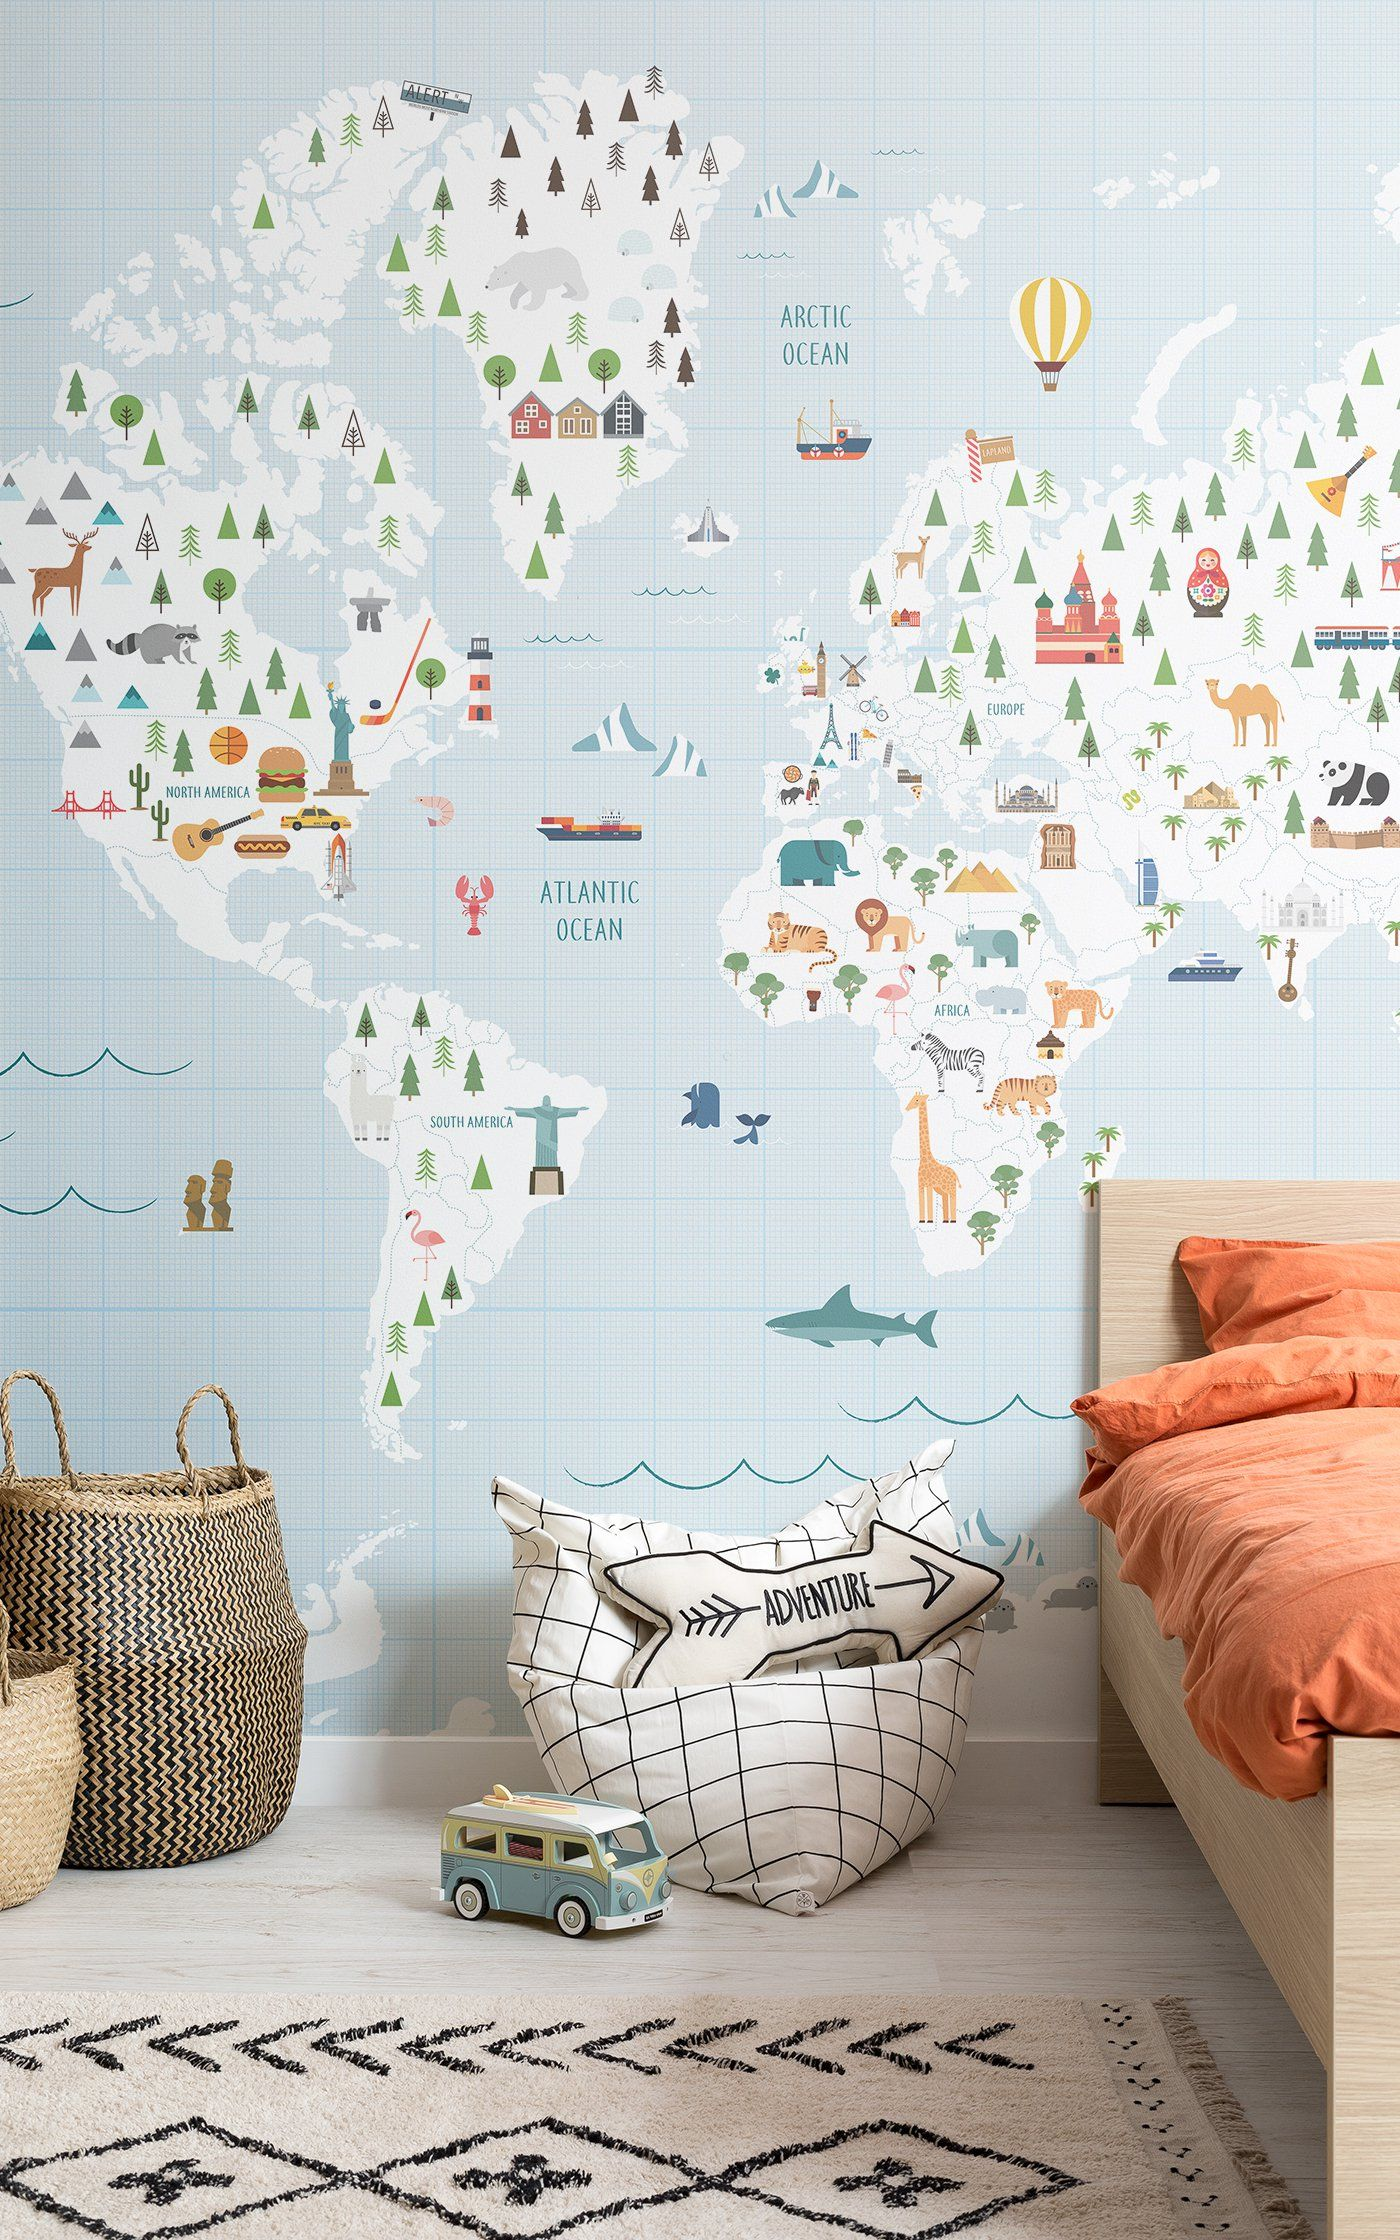 Boys Wallpaper Wallpaper For Boys Murals Wallpaper Boys Bedroom Wallpaper Girls Bedroom Wallpaper Boys Room Wallpaper